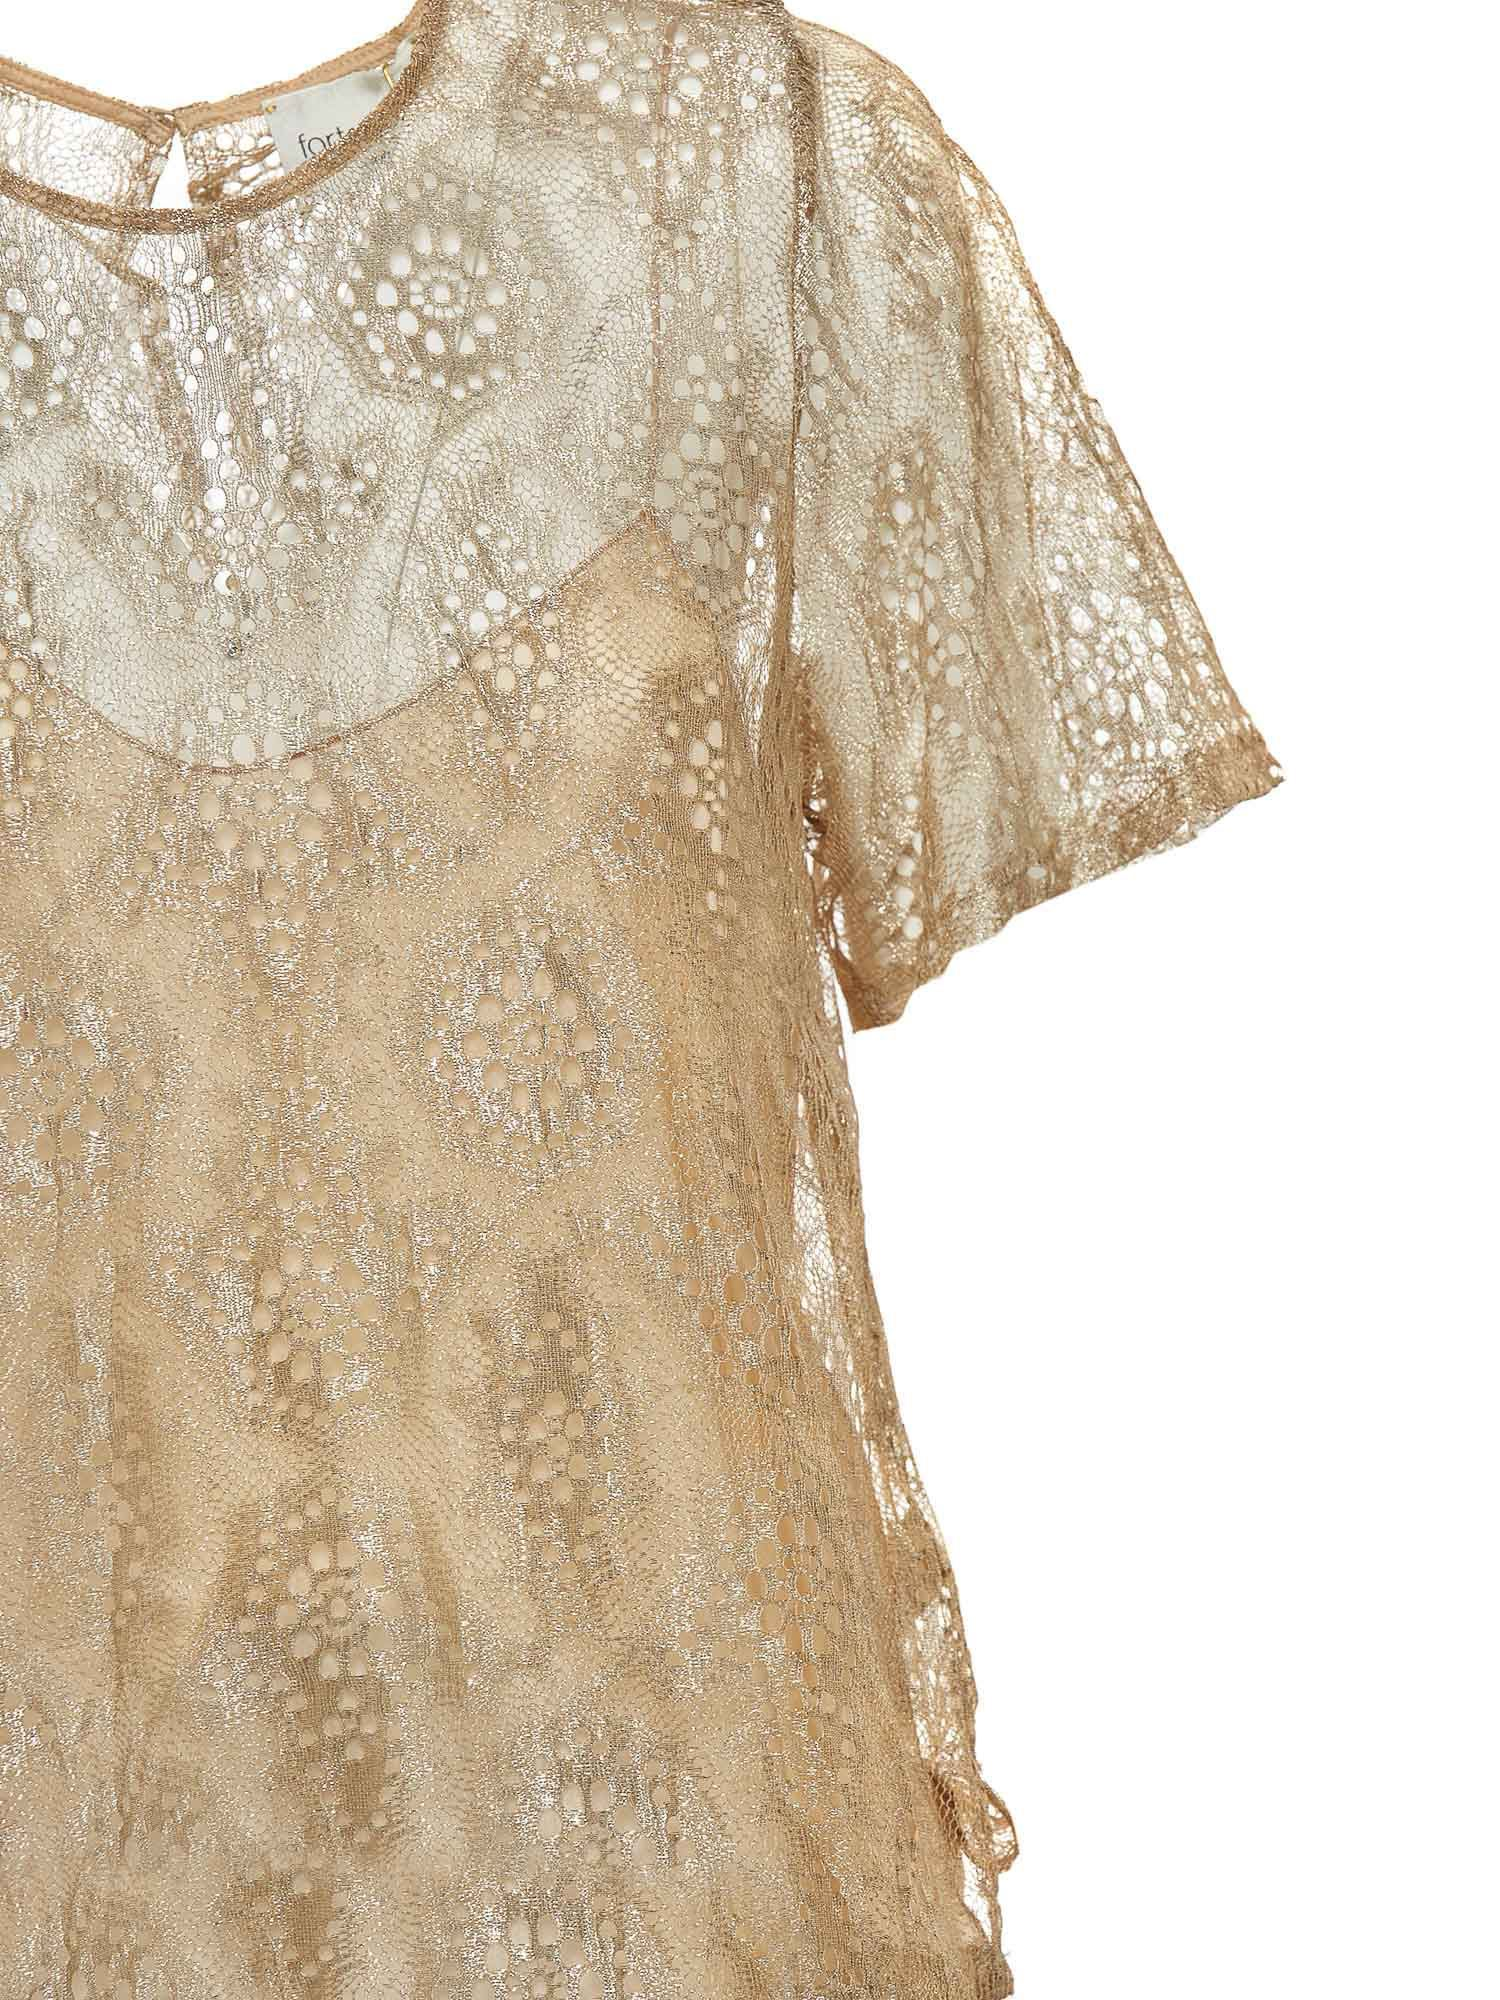 FORTE FORTE T-shirts CHANTILLY LACE LUREX T-SHIRT IN GOLD COLOR